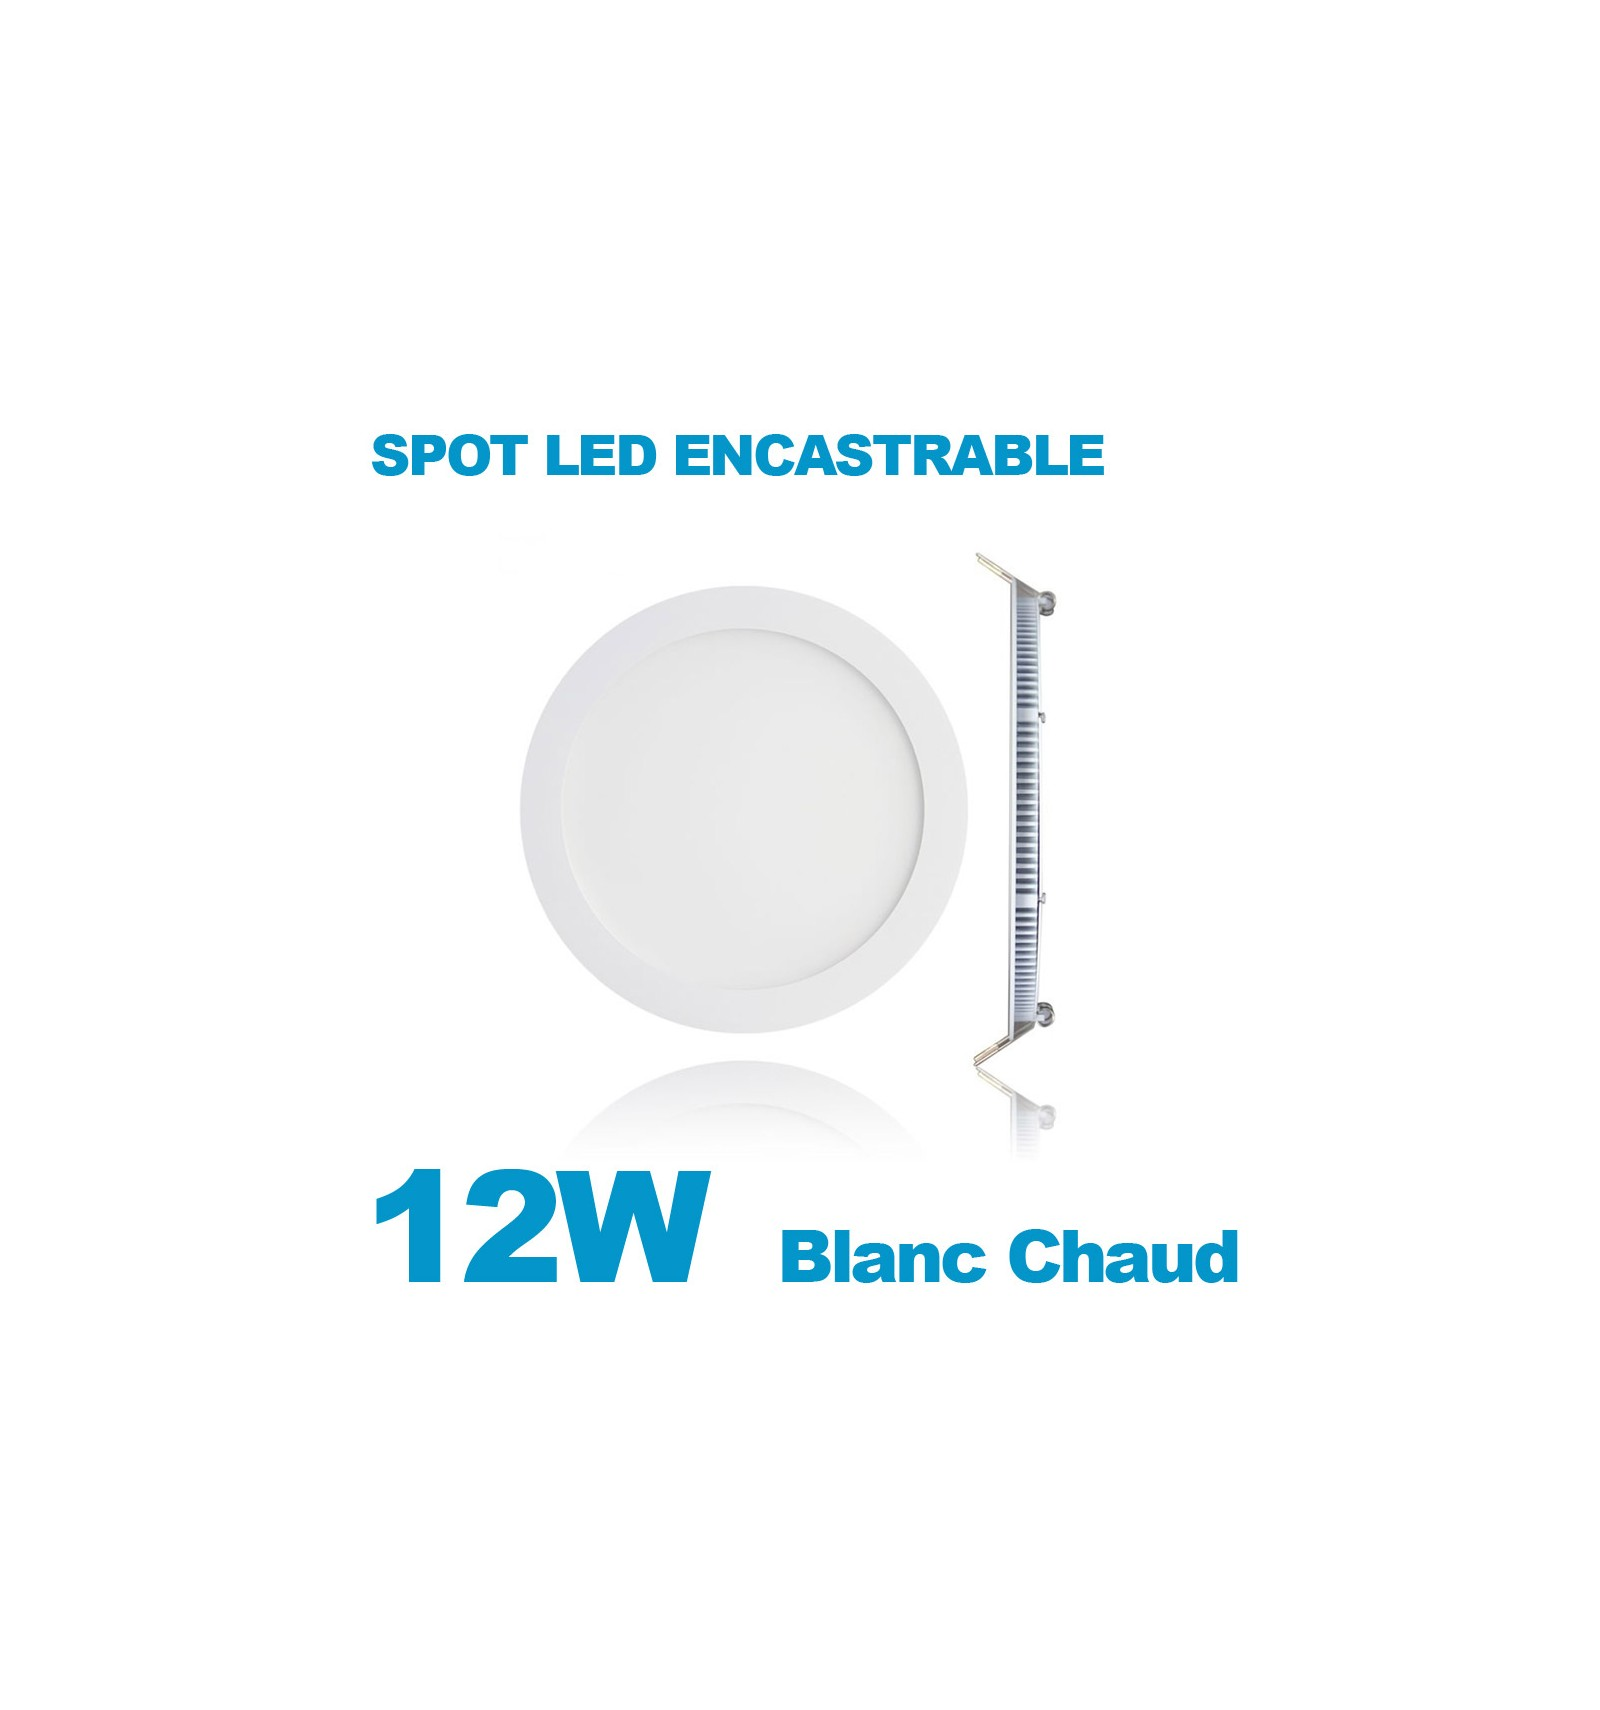 Spot encastrable led downlight panel extra plat 12w blanc - Spot led encastrable plafond extra plat ...